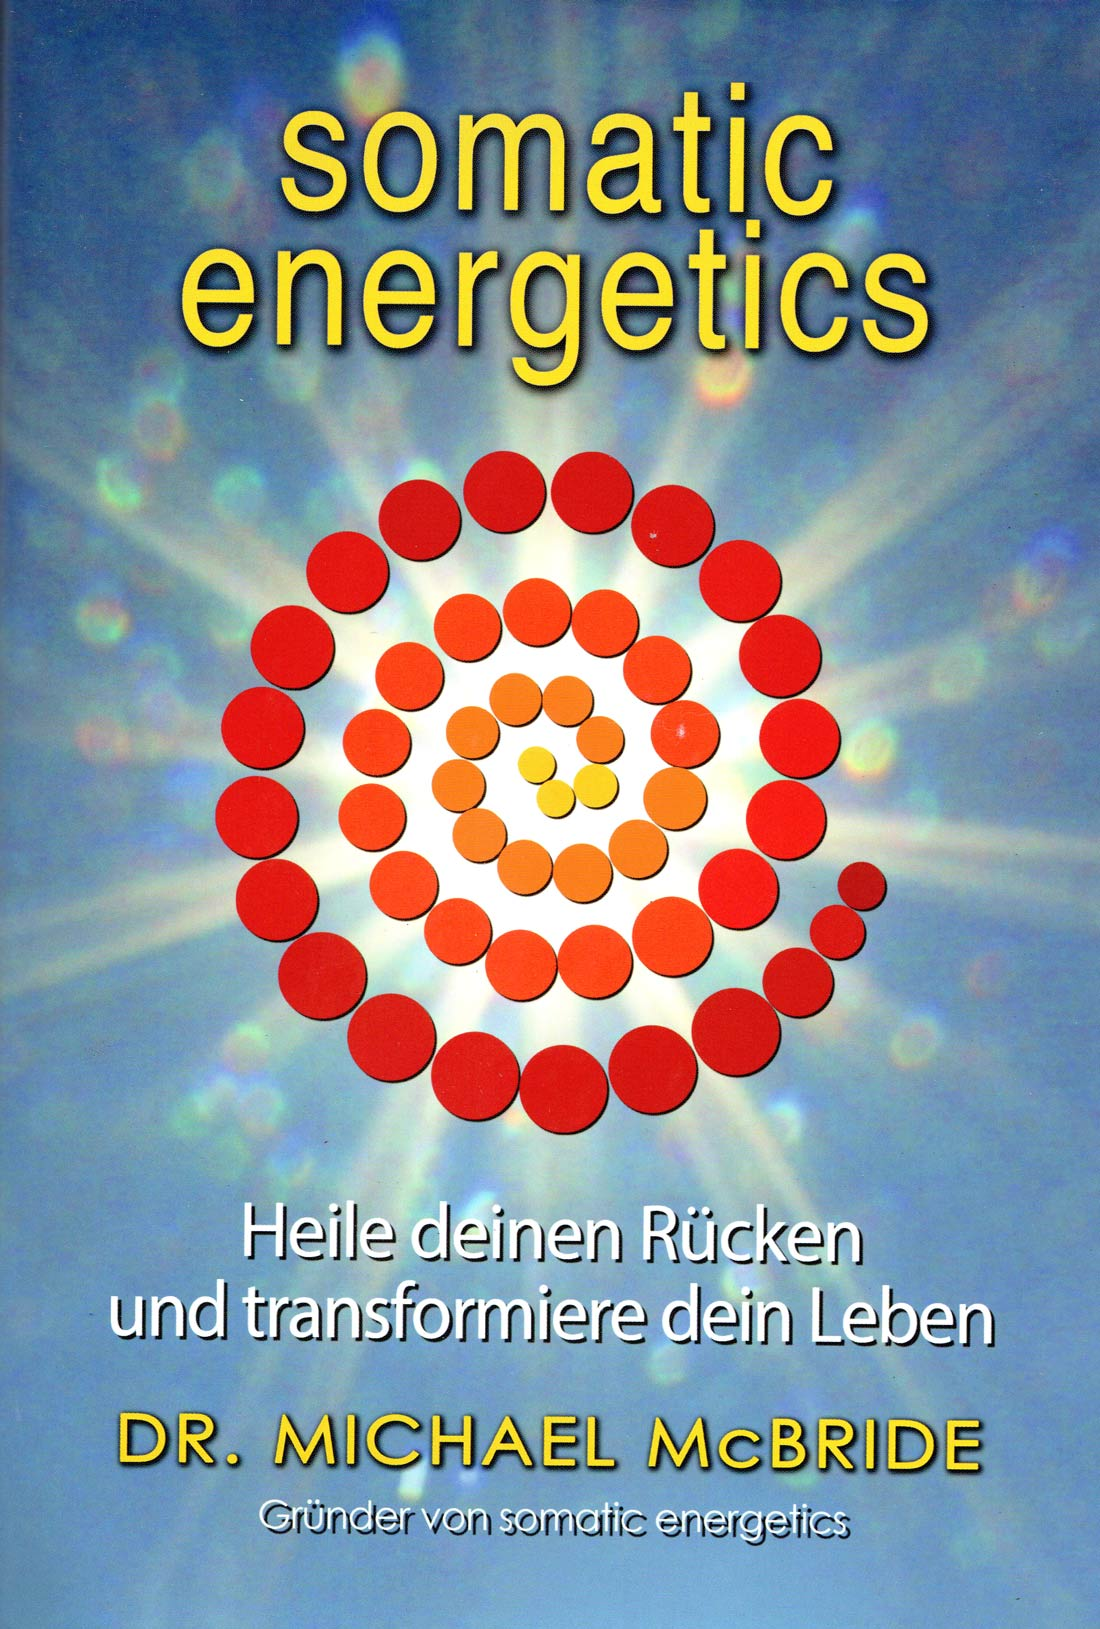 Somatic Energetics in German